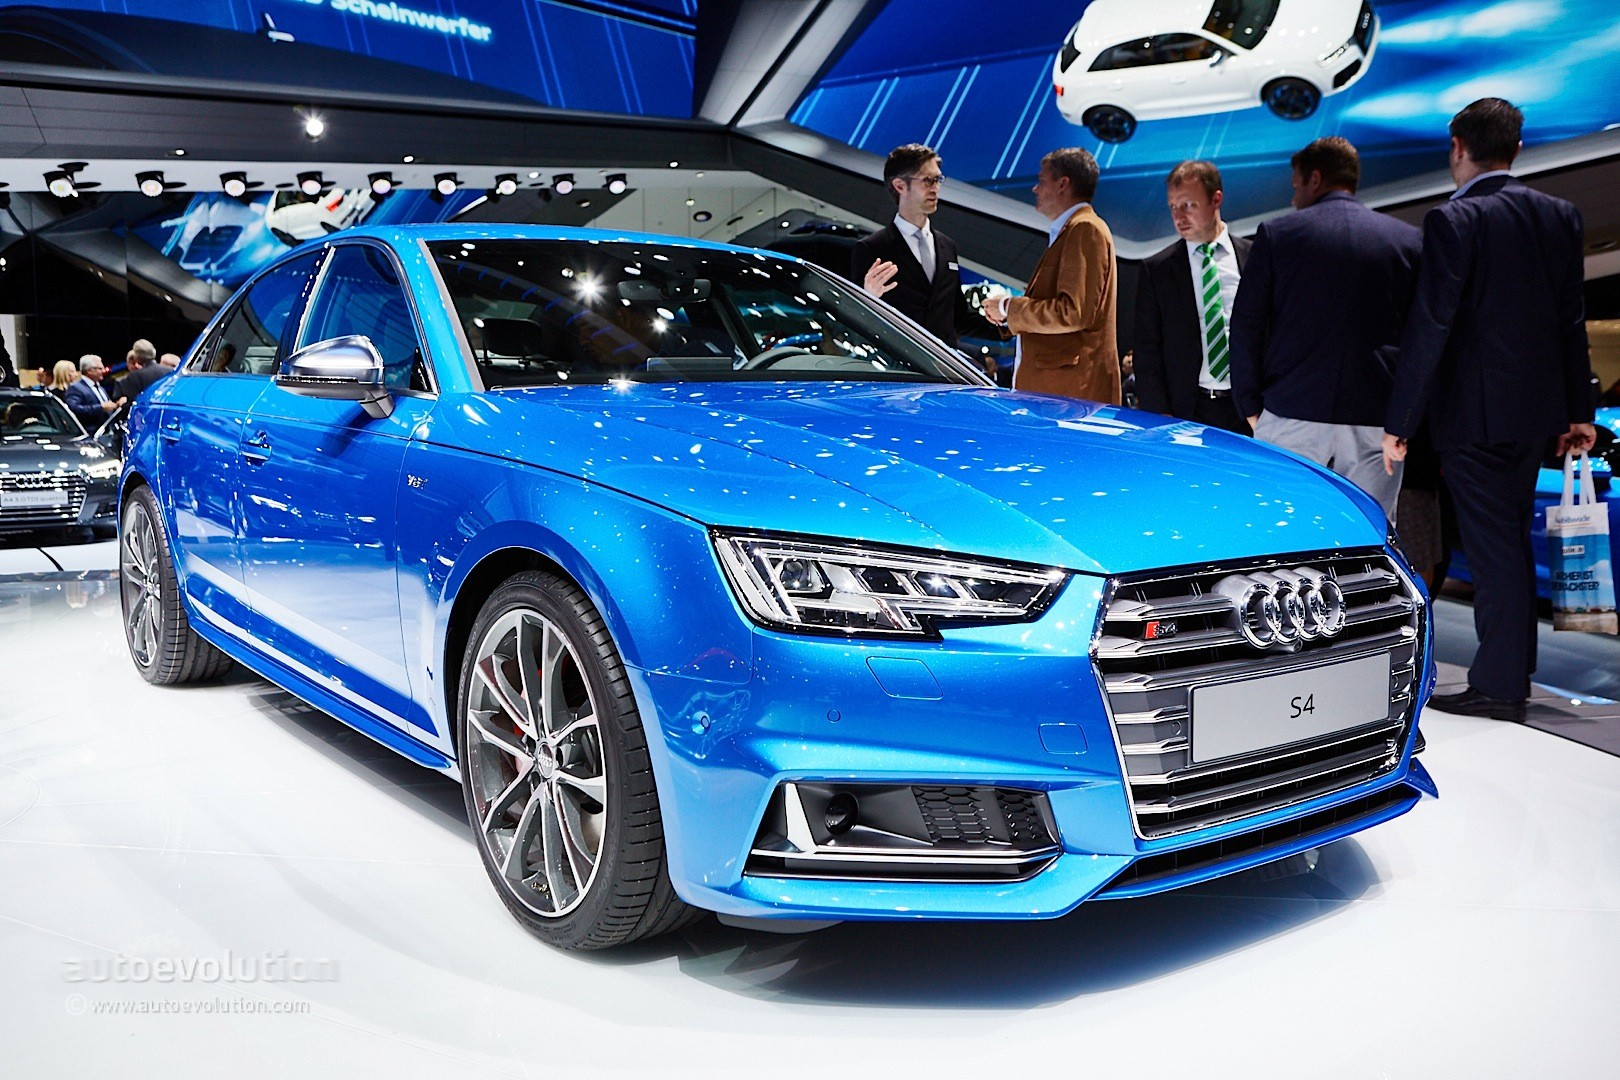 2018 audi s4 specs and pricing announced in the us 0 to 60 in 44 2016 audi s4 sedan live photos from frankfurt iaa sciox Images